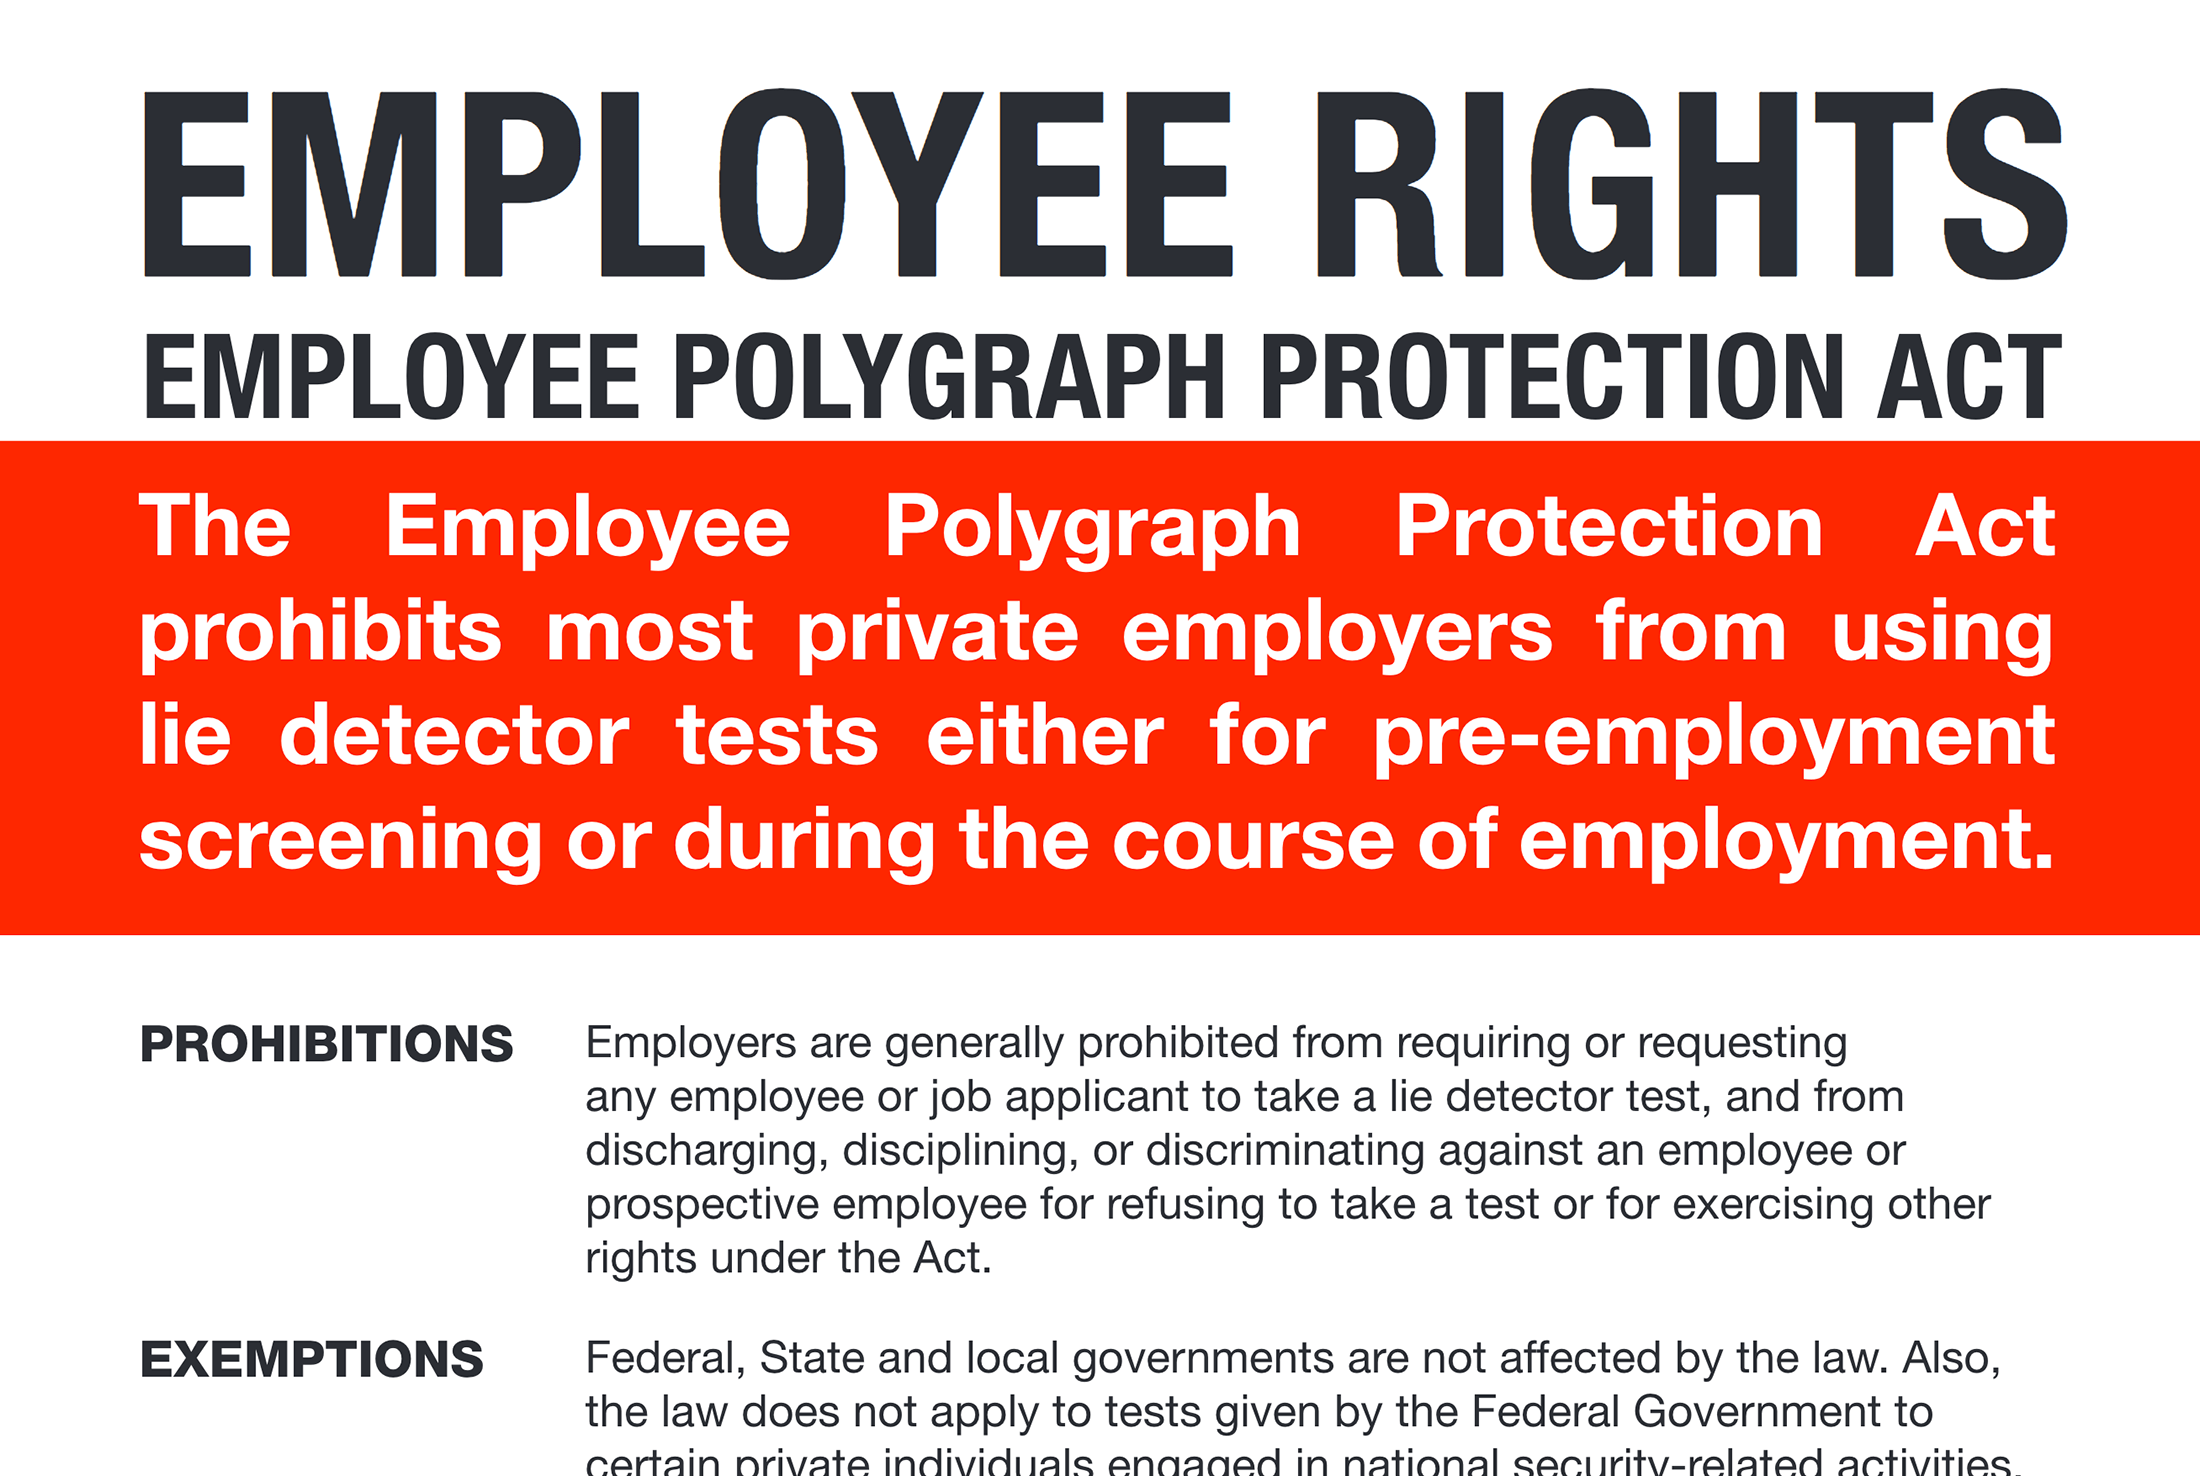 Fair Labor Standards Act (FLSA) and Employee Polygraph Protection Act (EPPA) postings